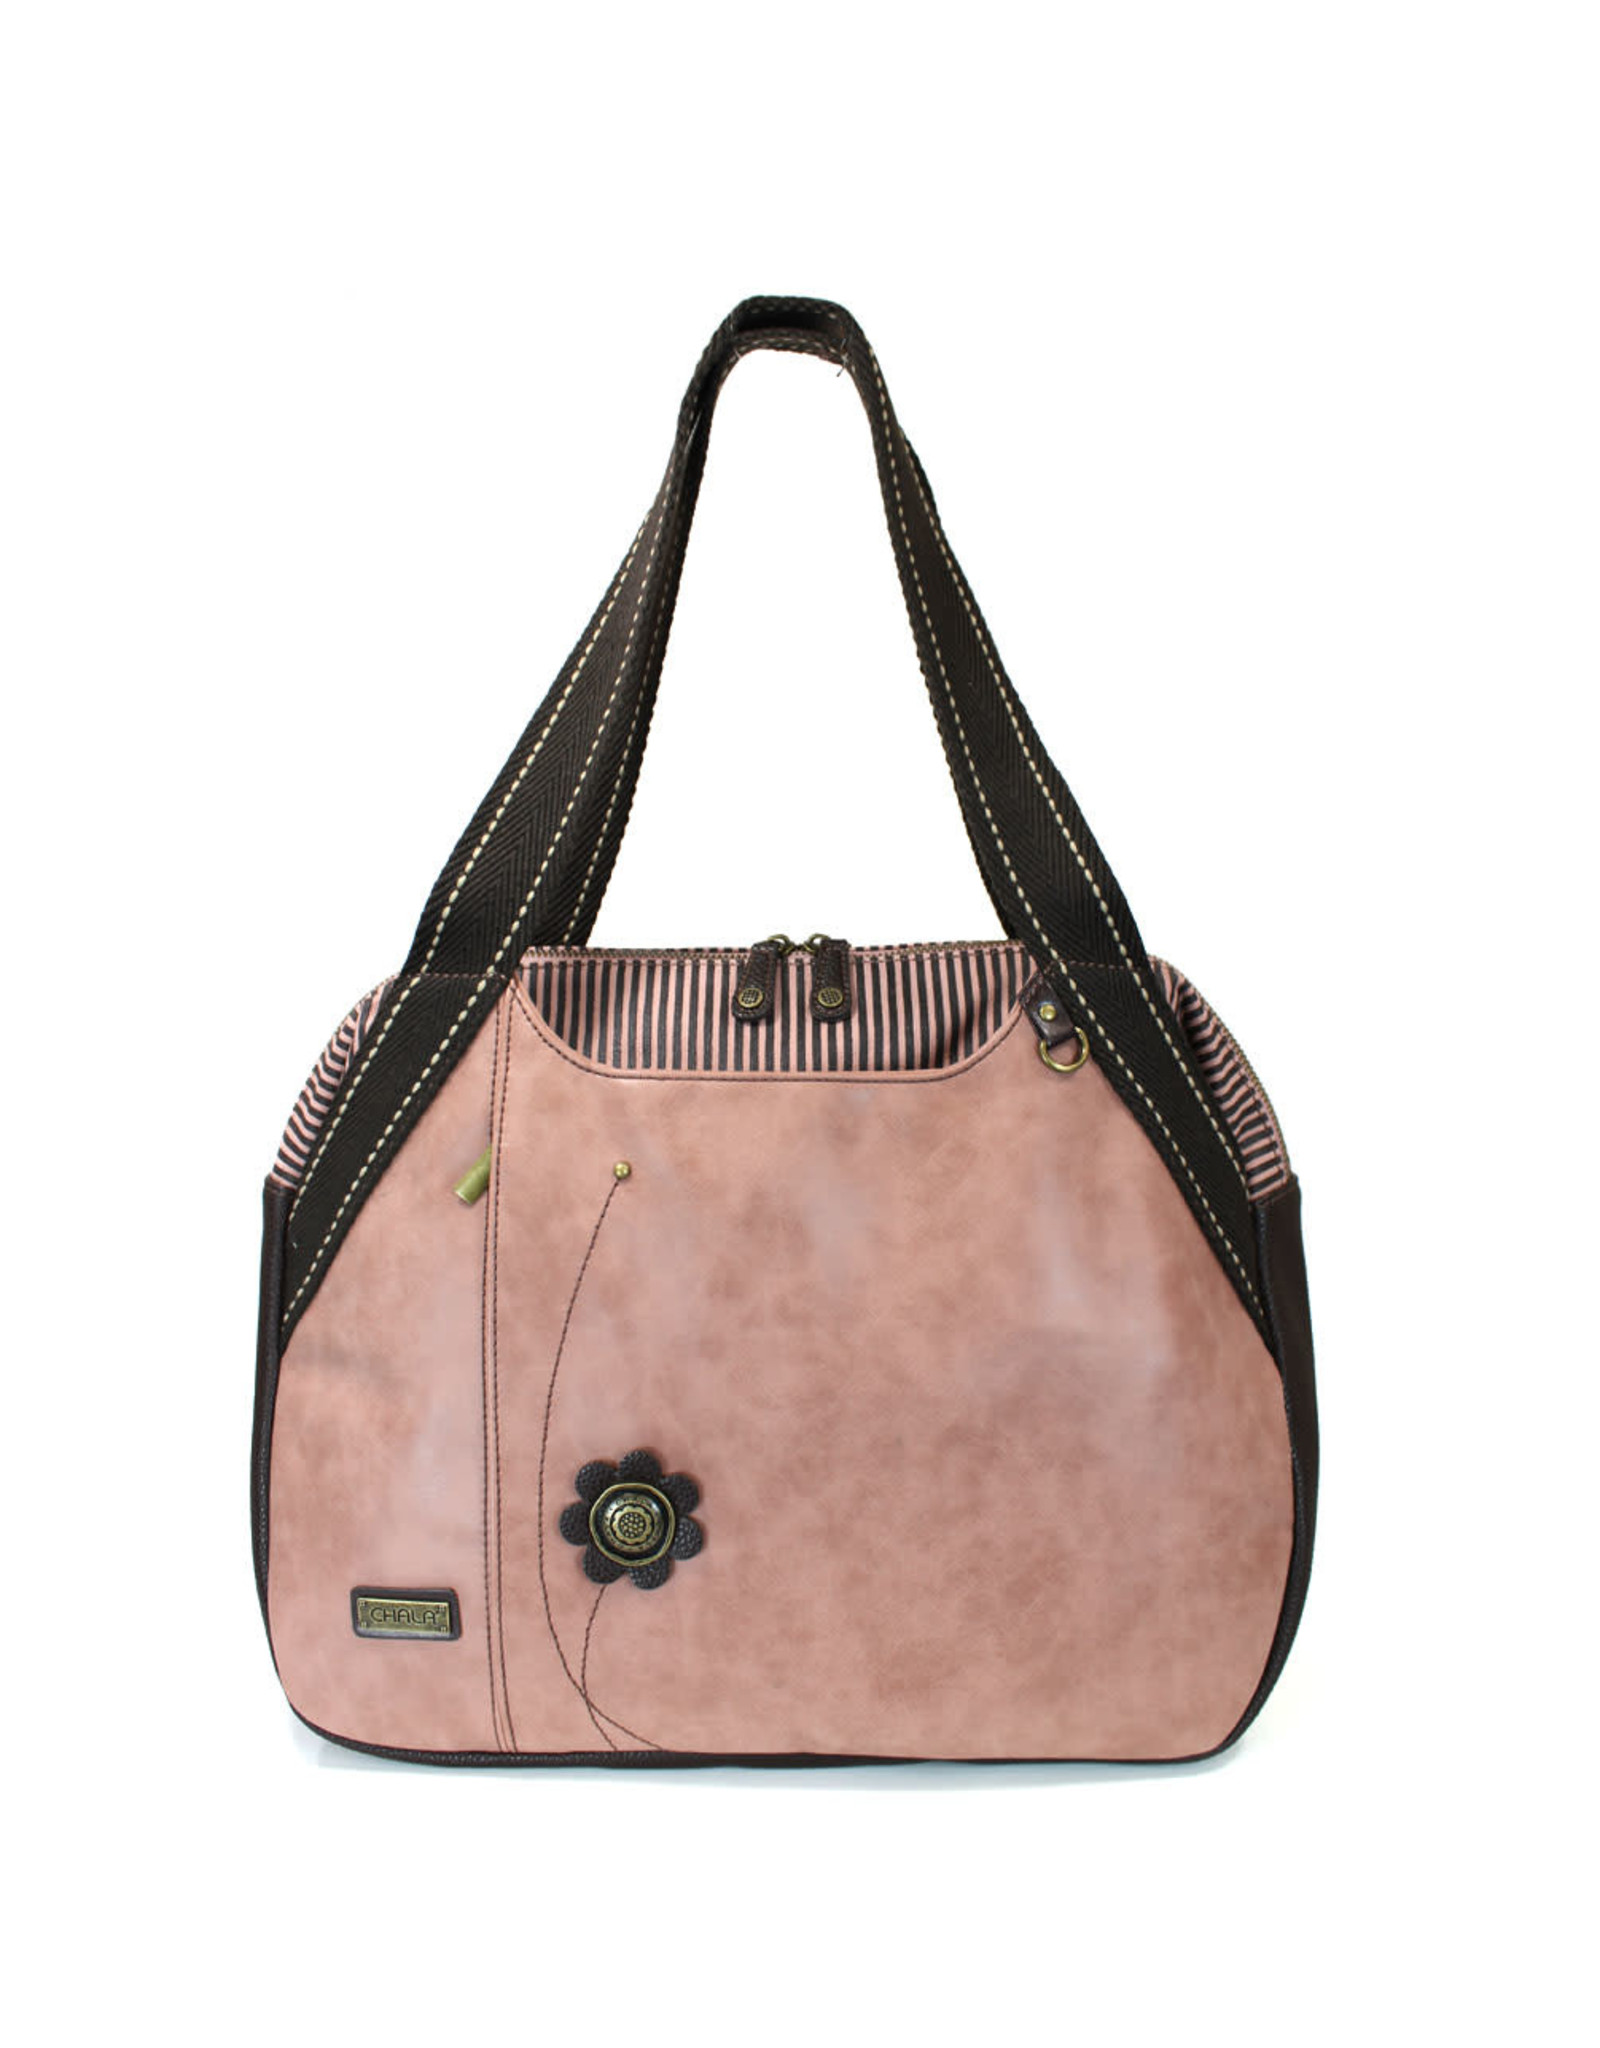 Chala Bowling Bag - Forget Me Not - Dusty Rose